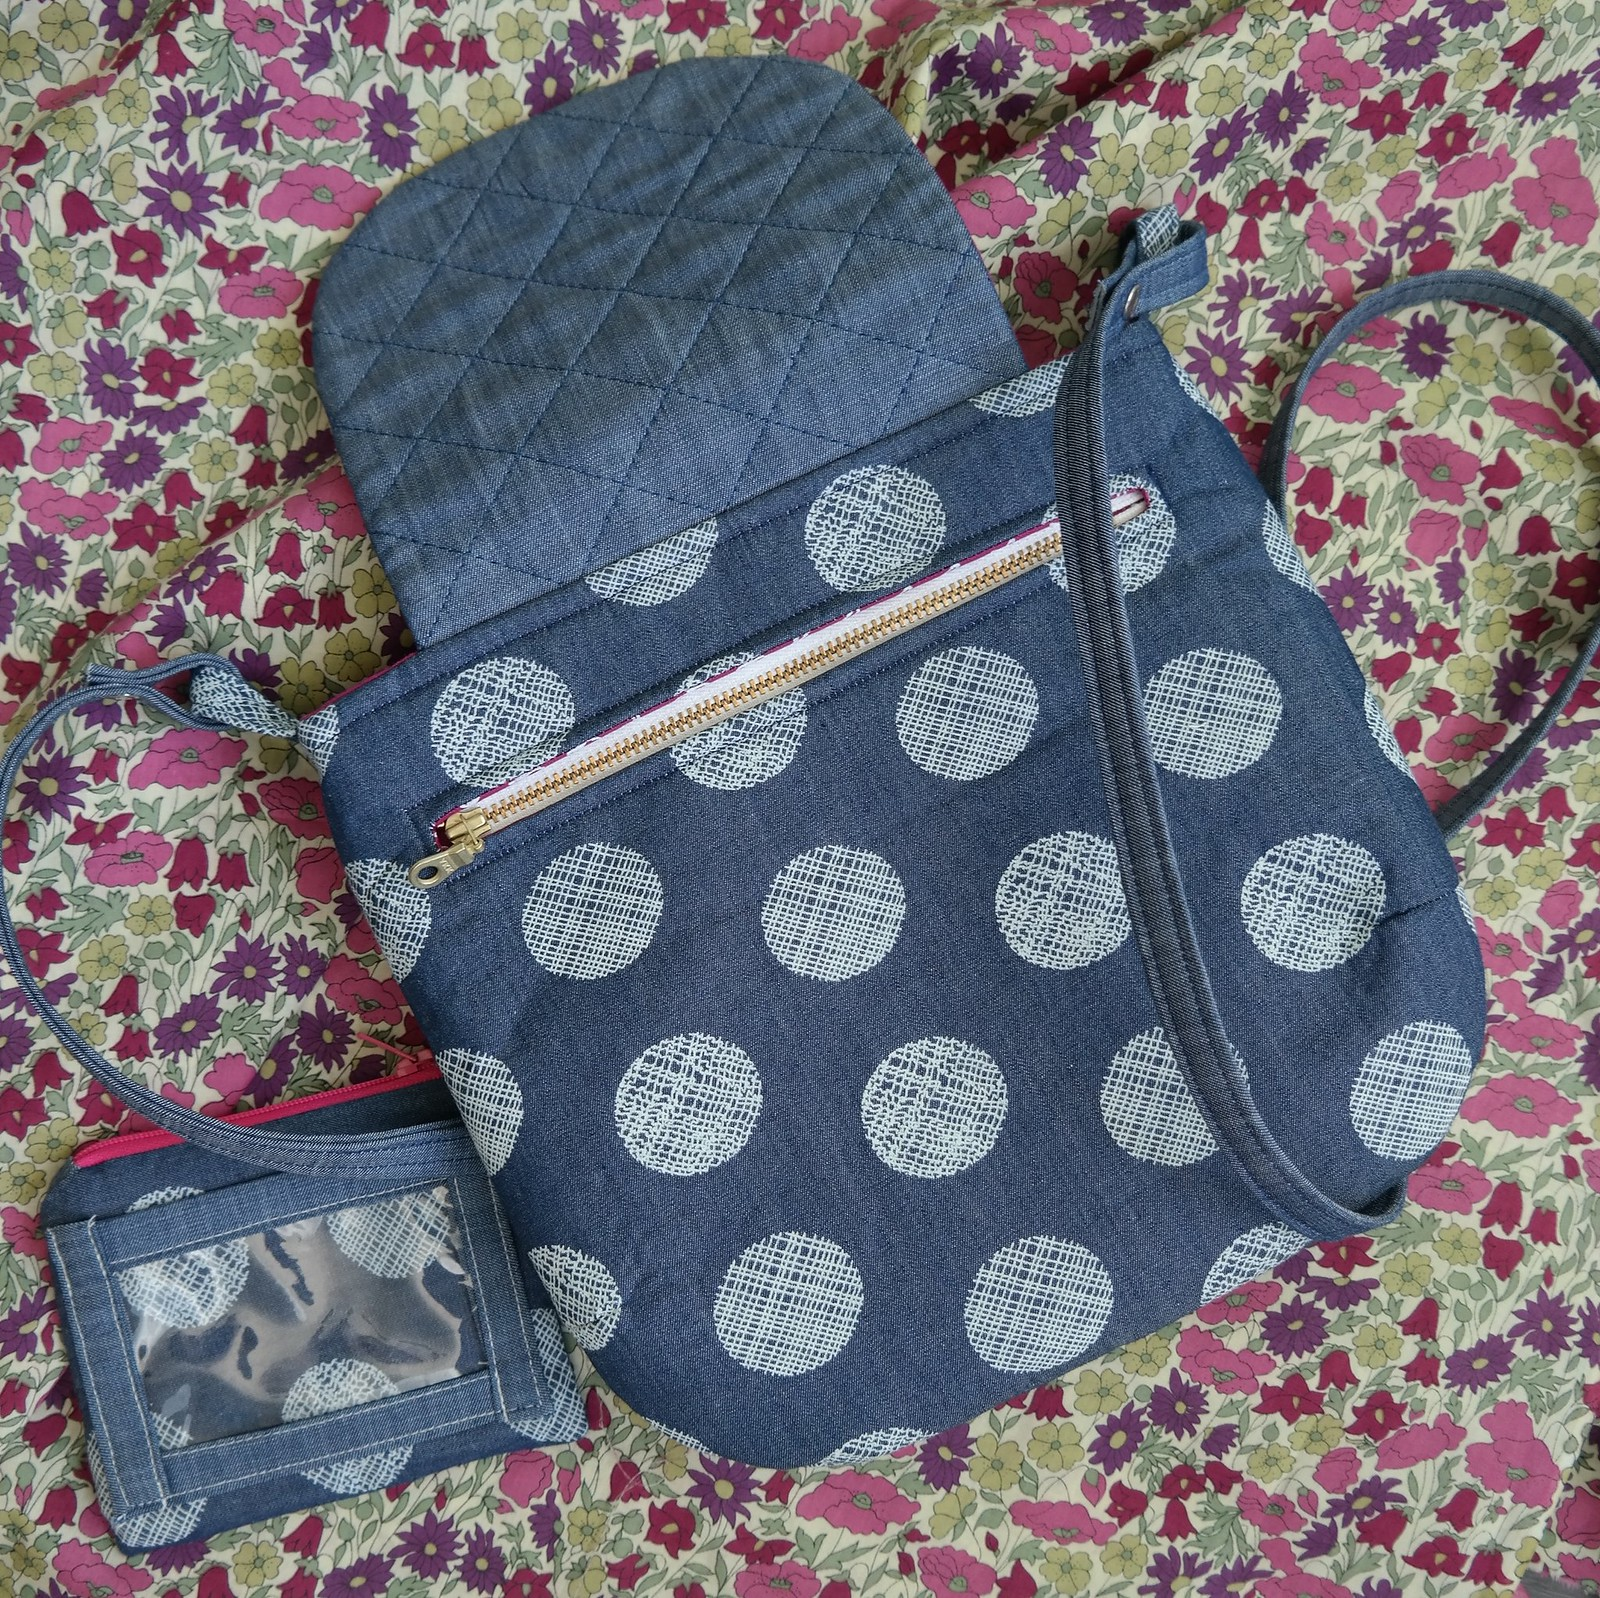 Gatherer's Crossbody Bag